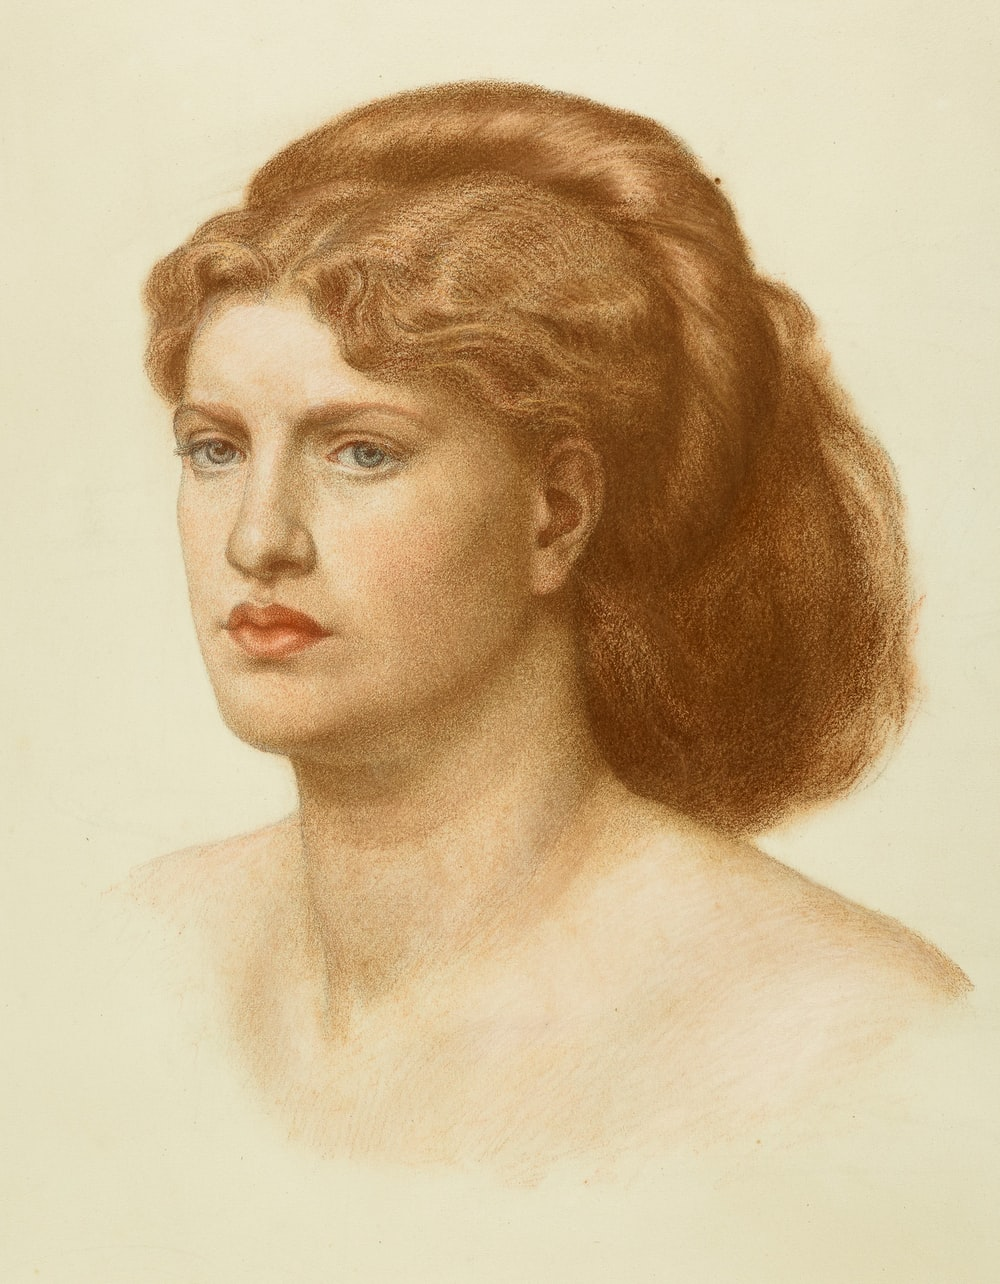 woman with blonde hair portrait